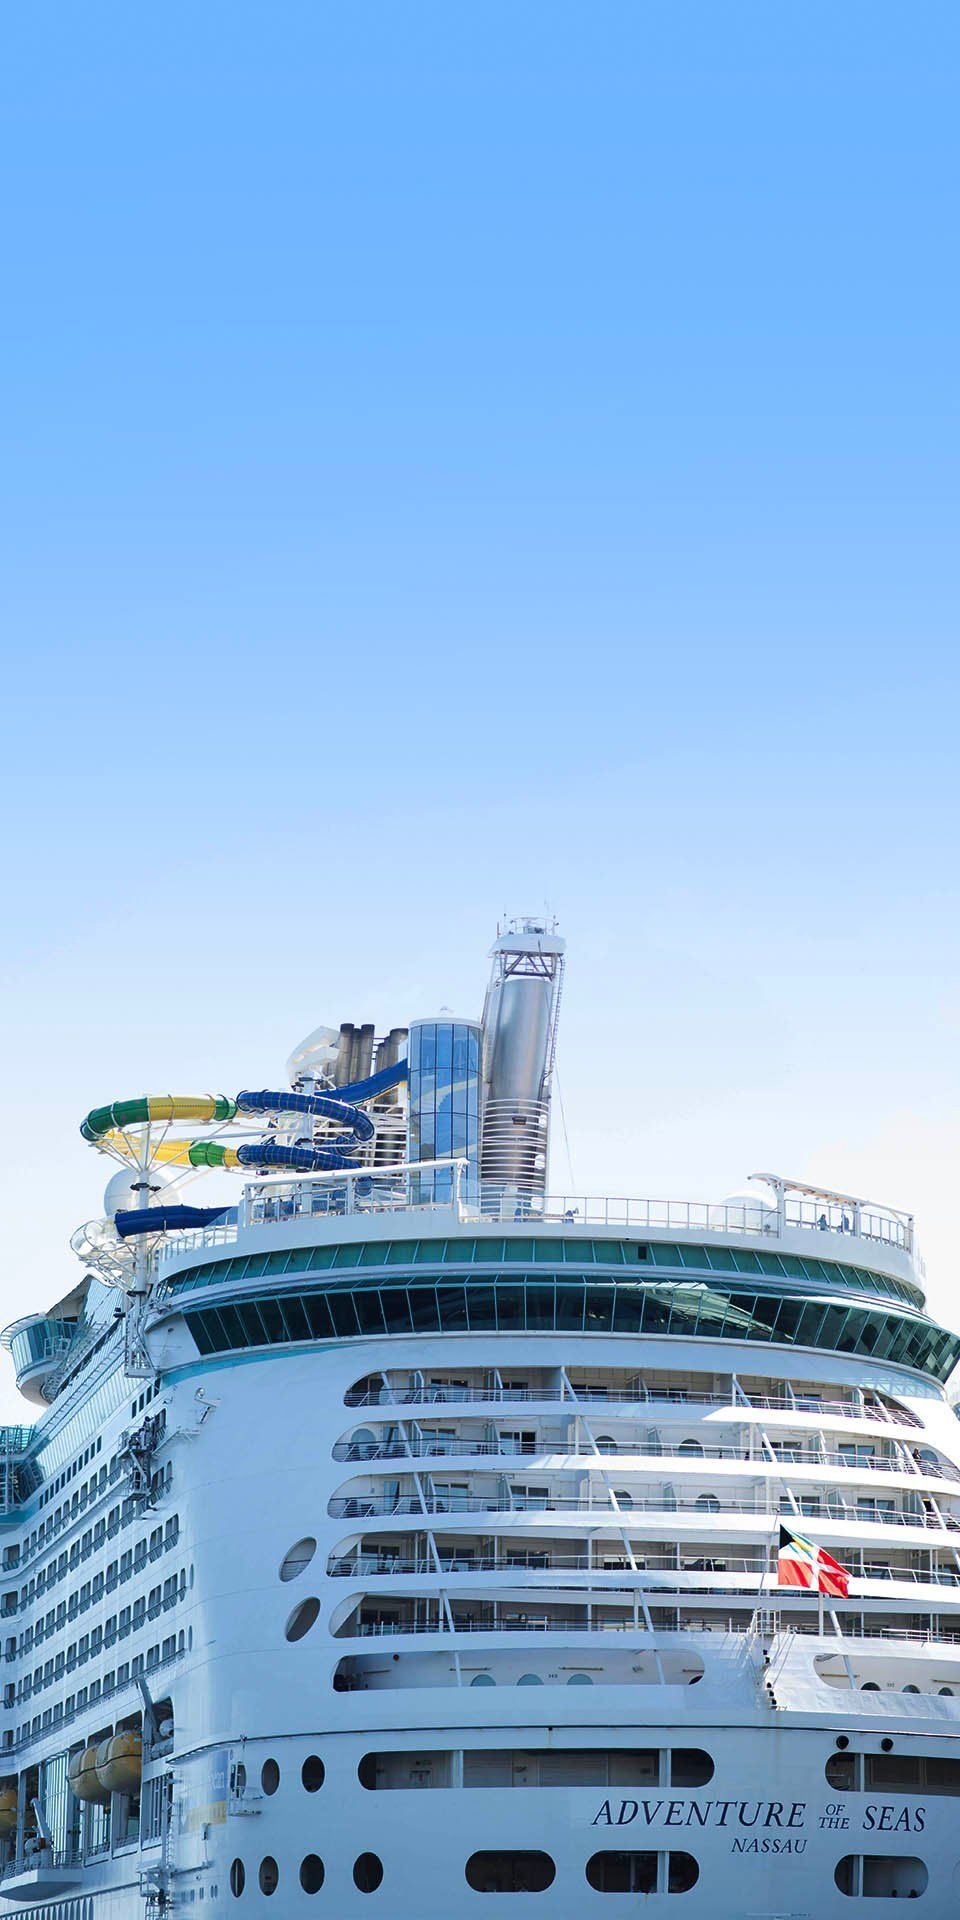 Adventure Of The Seas Island Hopping Has Never Been This Fun Explore The Best The Caribbean Has To Adventure Of The Seas Cruise Ship Royal Caribbean Cruise